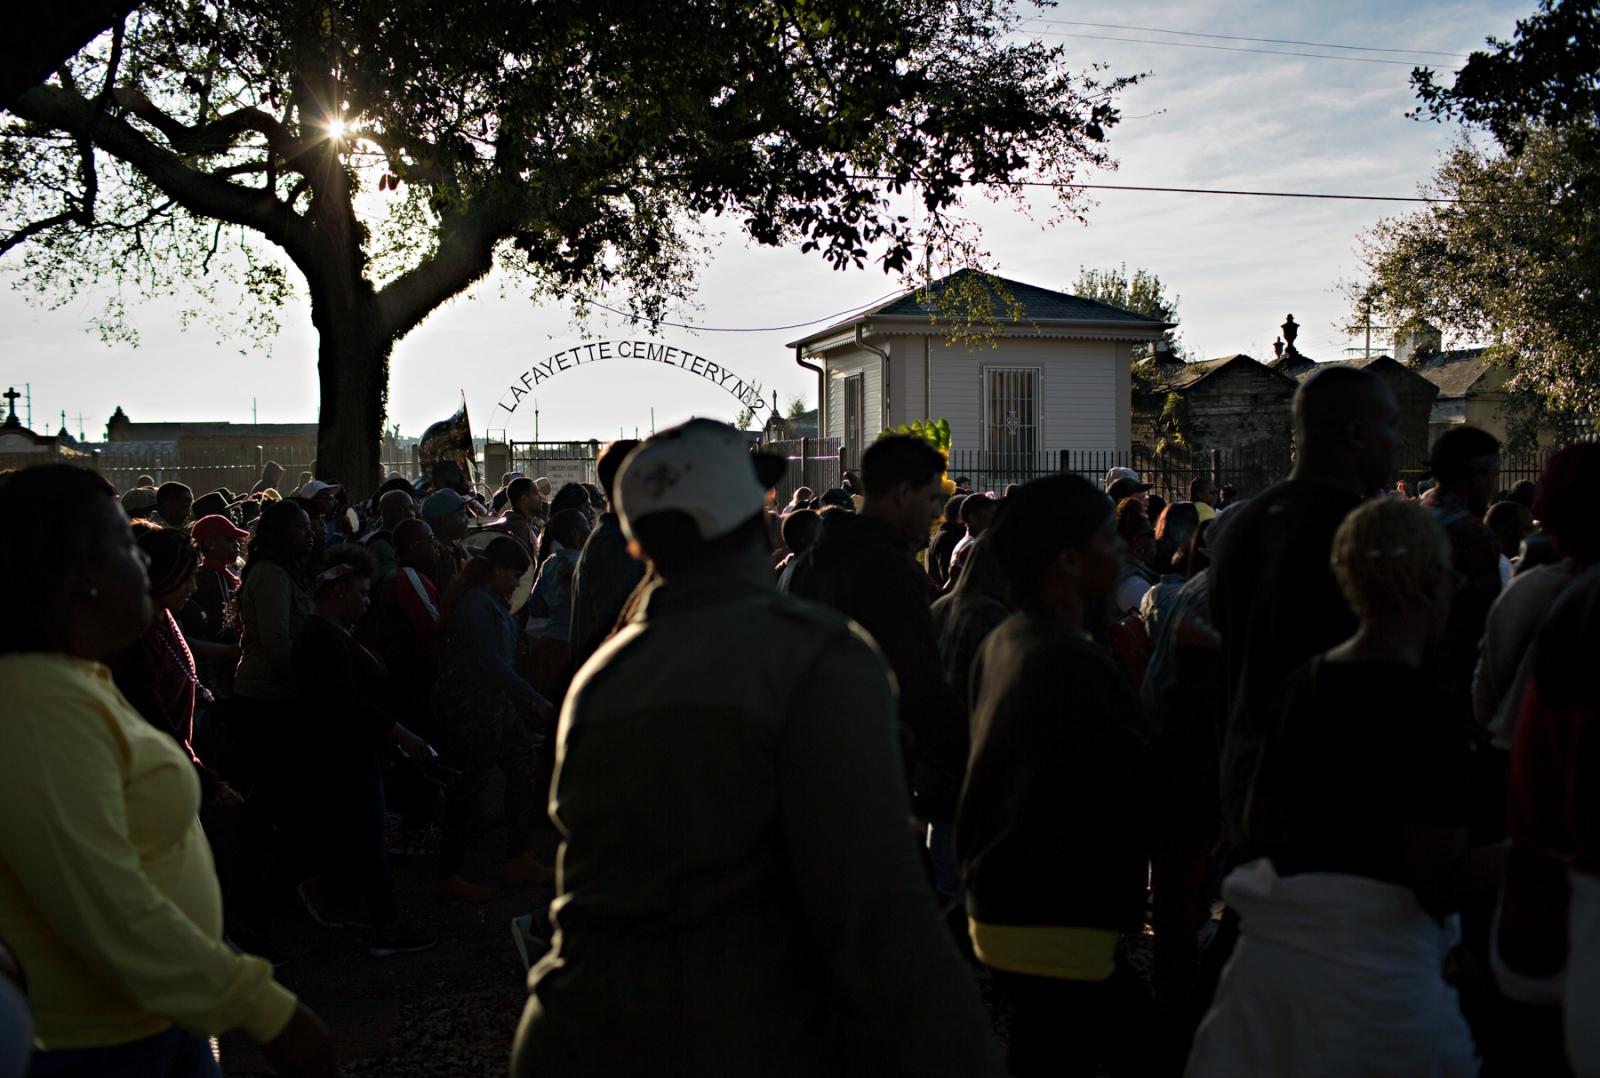 One of the orignal purposes of the Second Line parades was to play somber funeral dirges on the way to the cemetery. Once the funeral had ended, the band would play more festive songs celebrating the life of the deceased person.